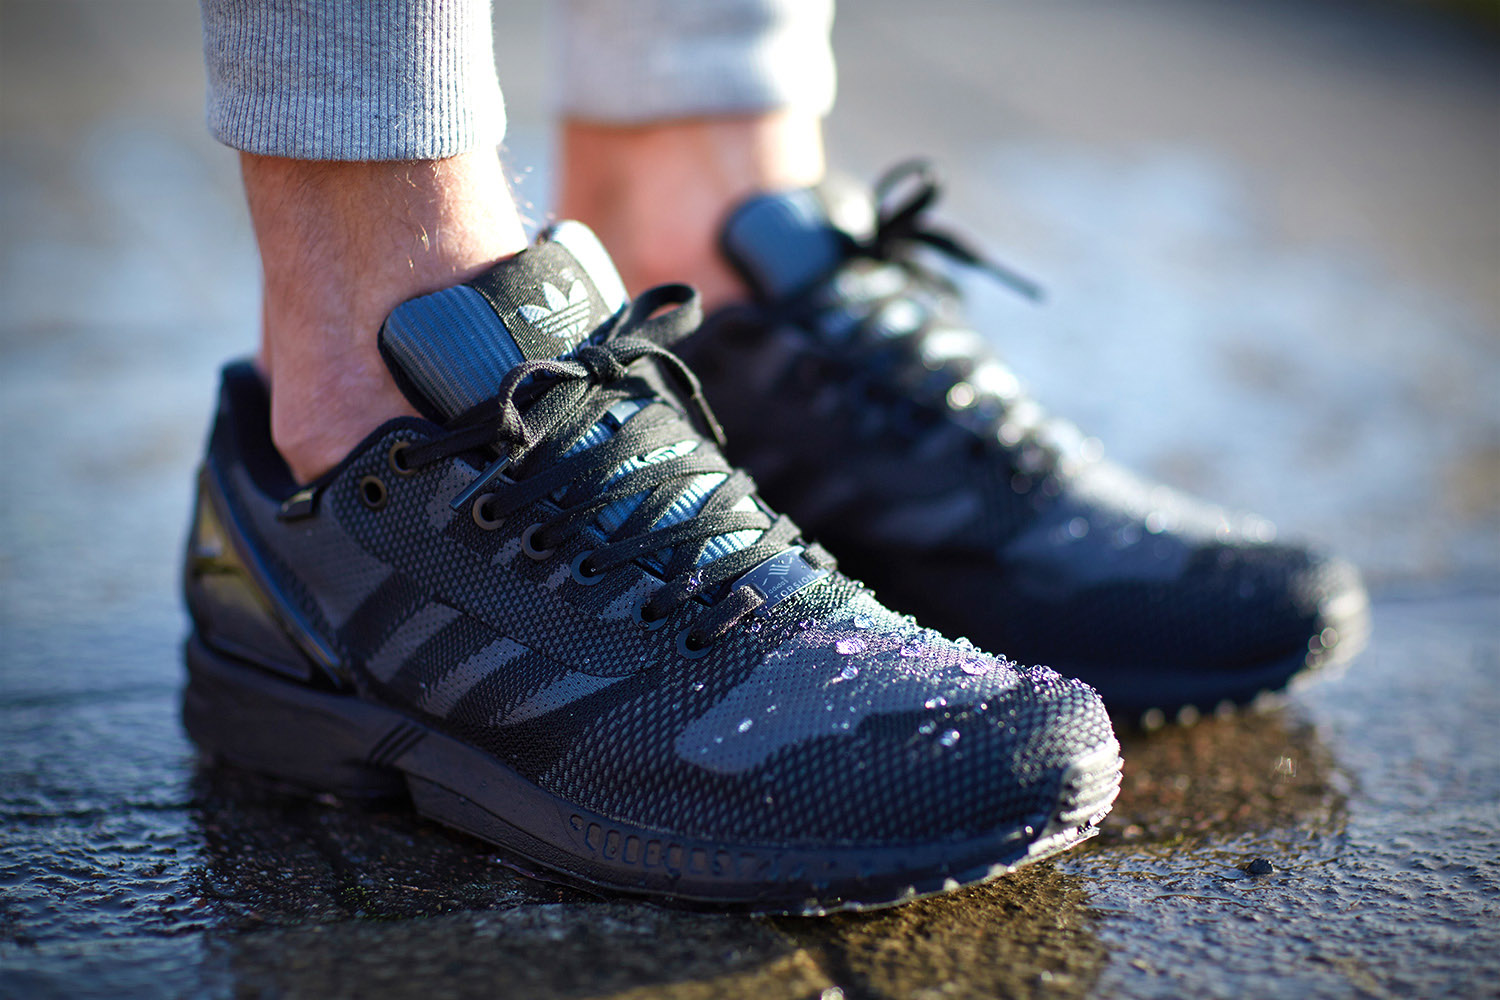 cdd62e2a9752 The adidas ZX Flux Weave Is Ready for Winter